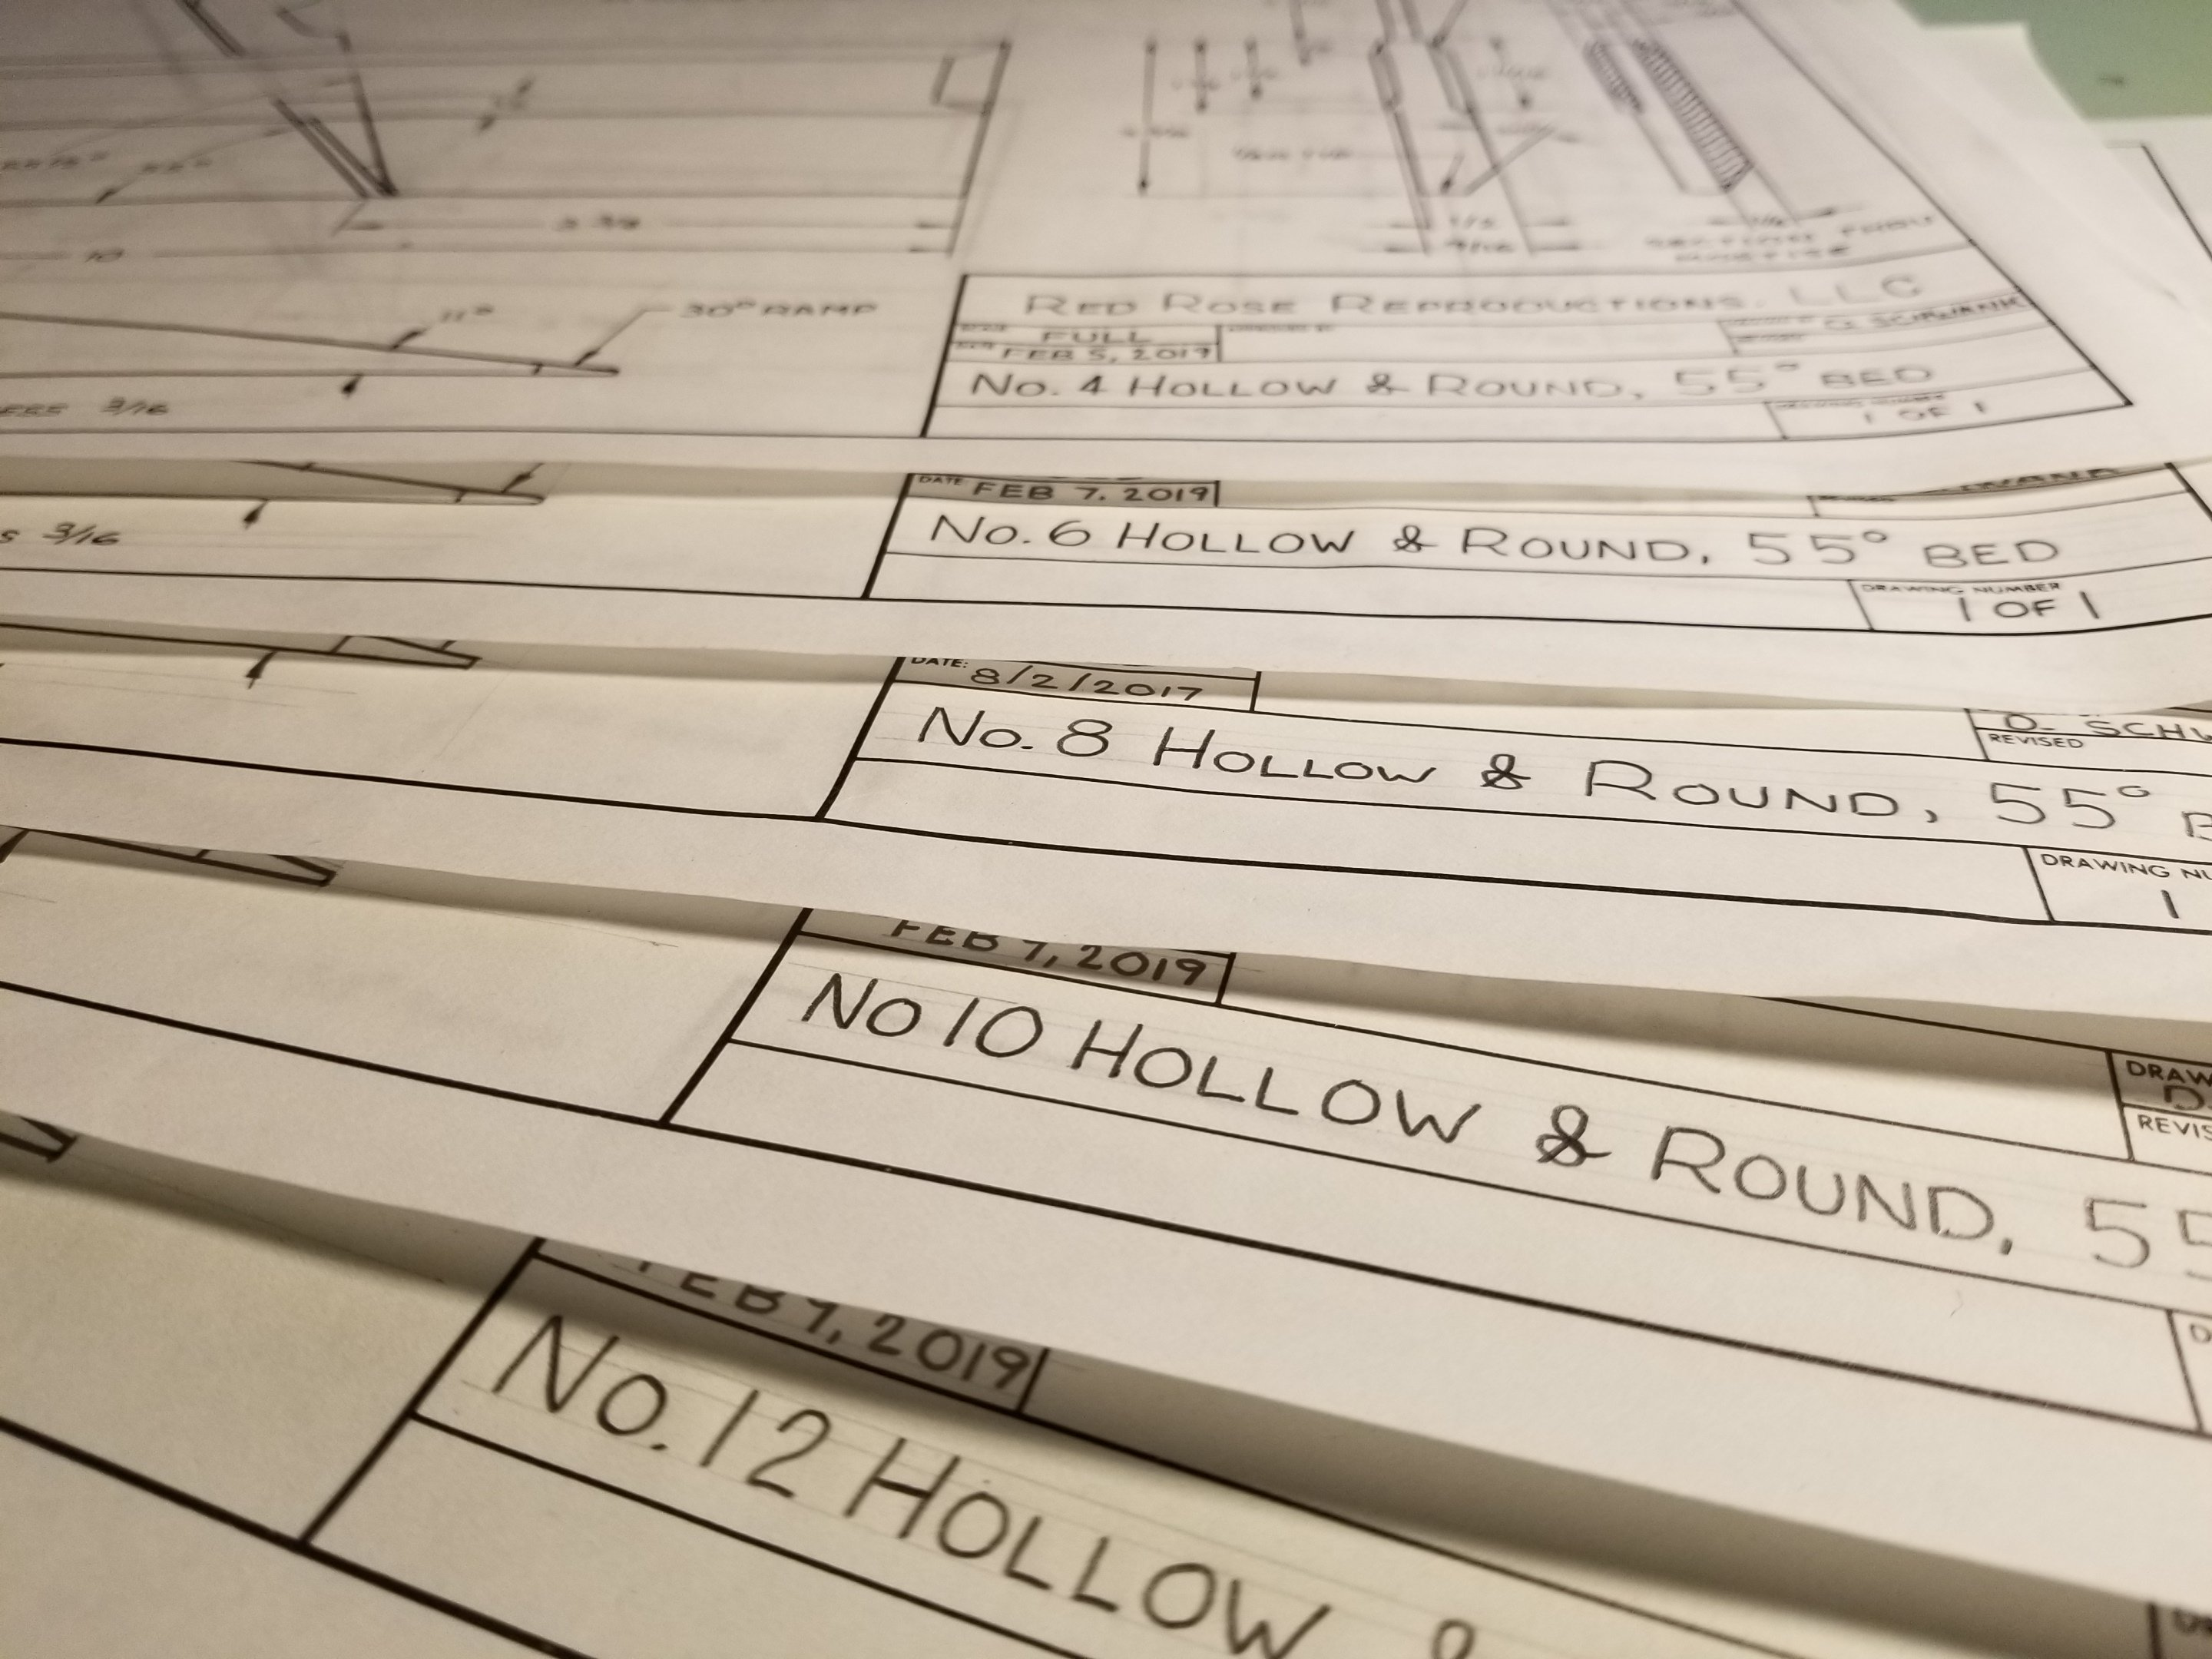 Hollow and Round Plans